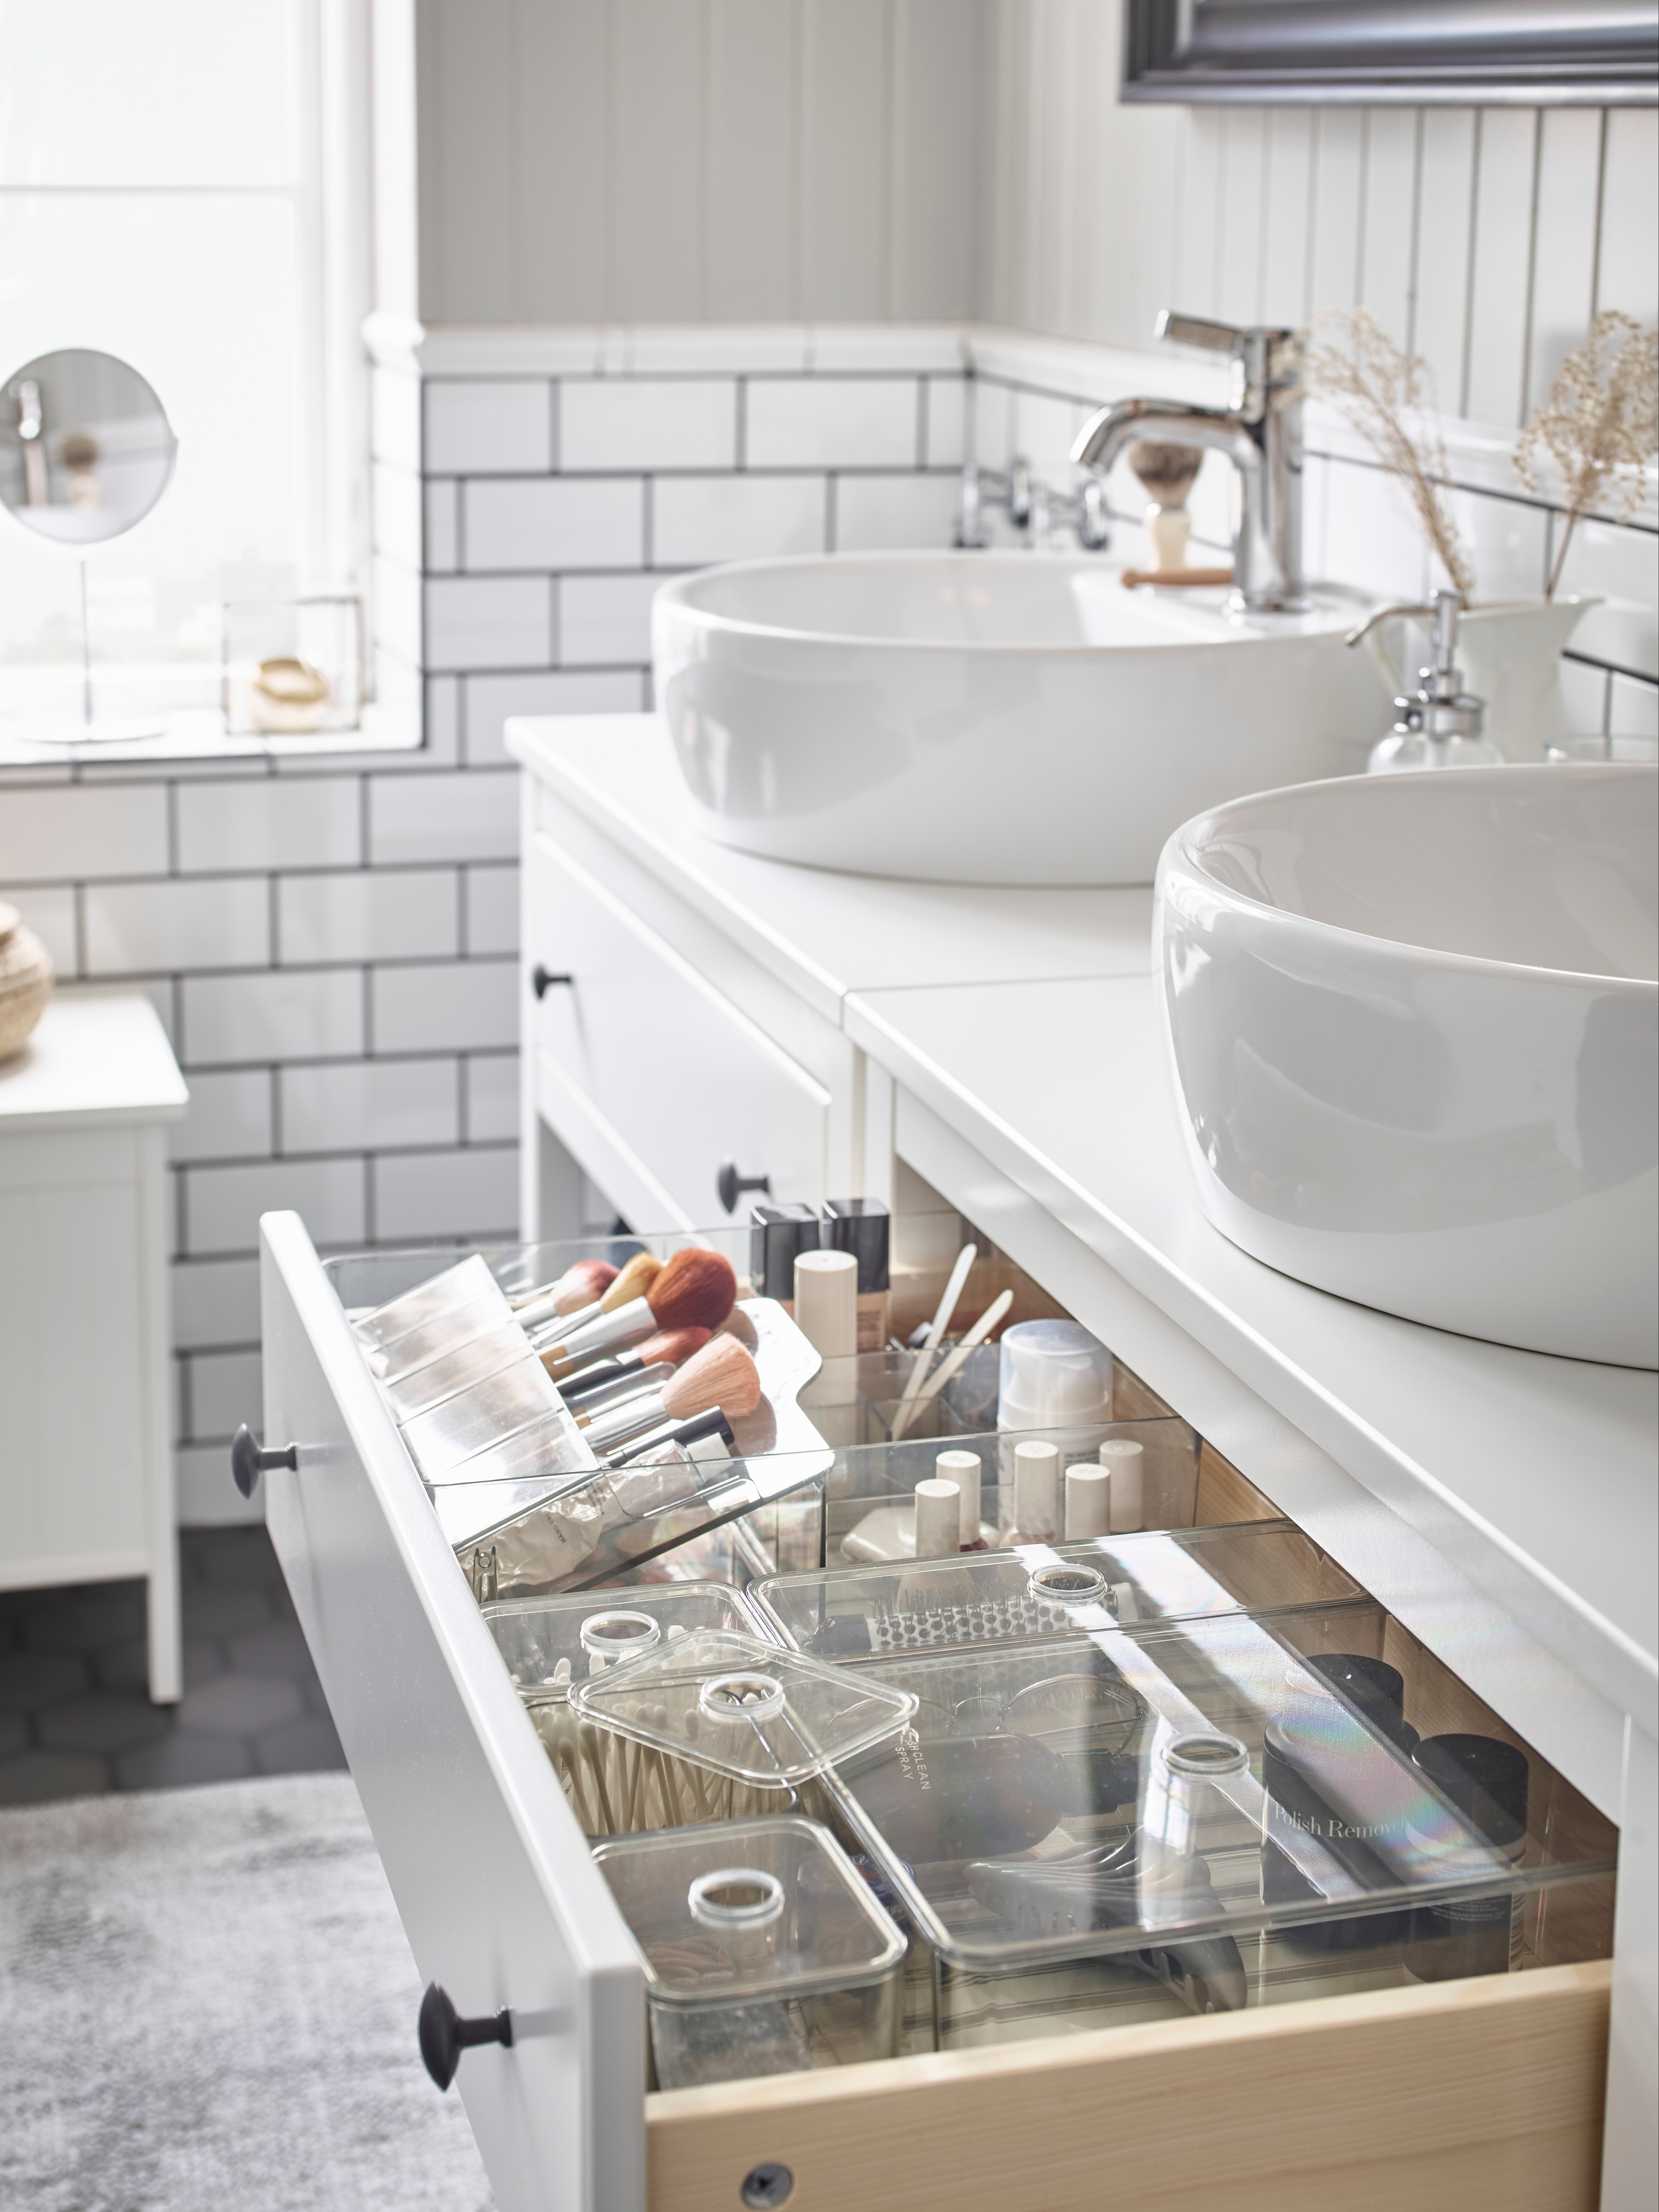 The drawer of a white wash-stand is open to show five GODMORGON clear, smoked boxes with lids holding bathroom accessories.